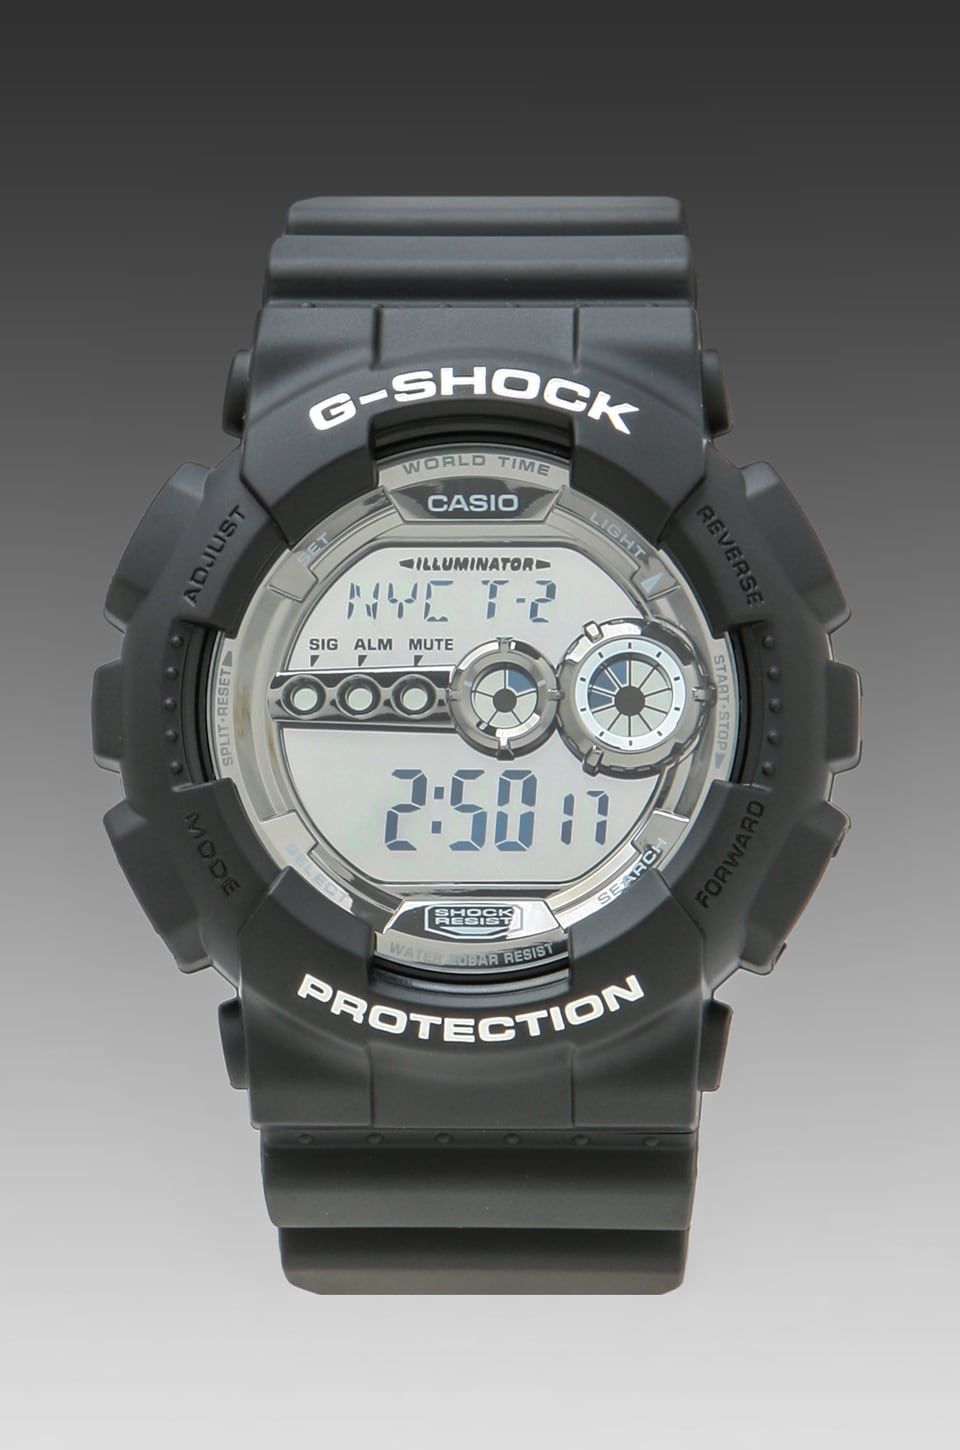 G-Shock GD-100BW-1 in Black